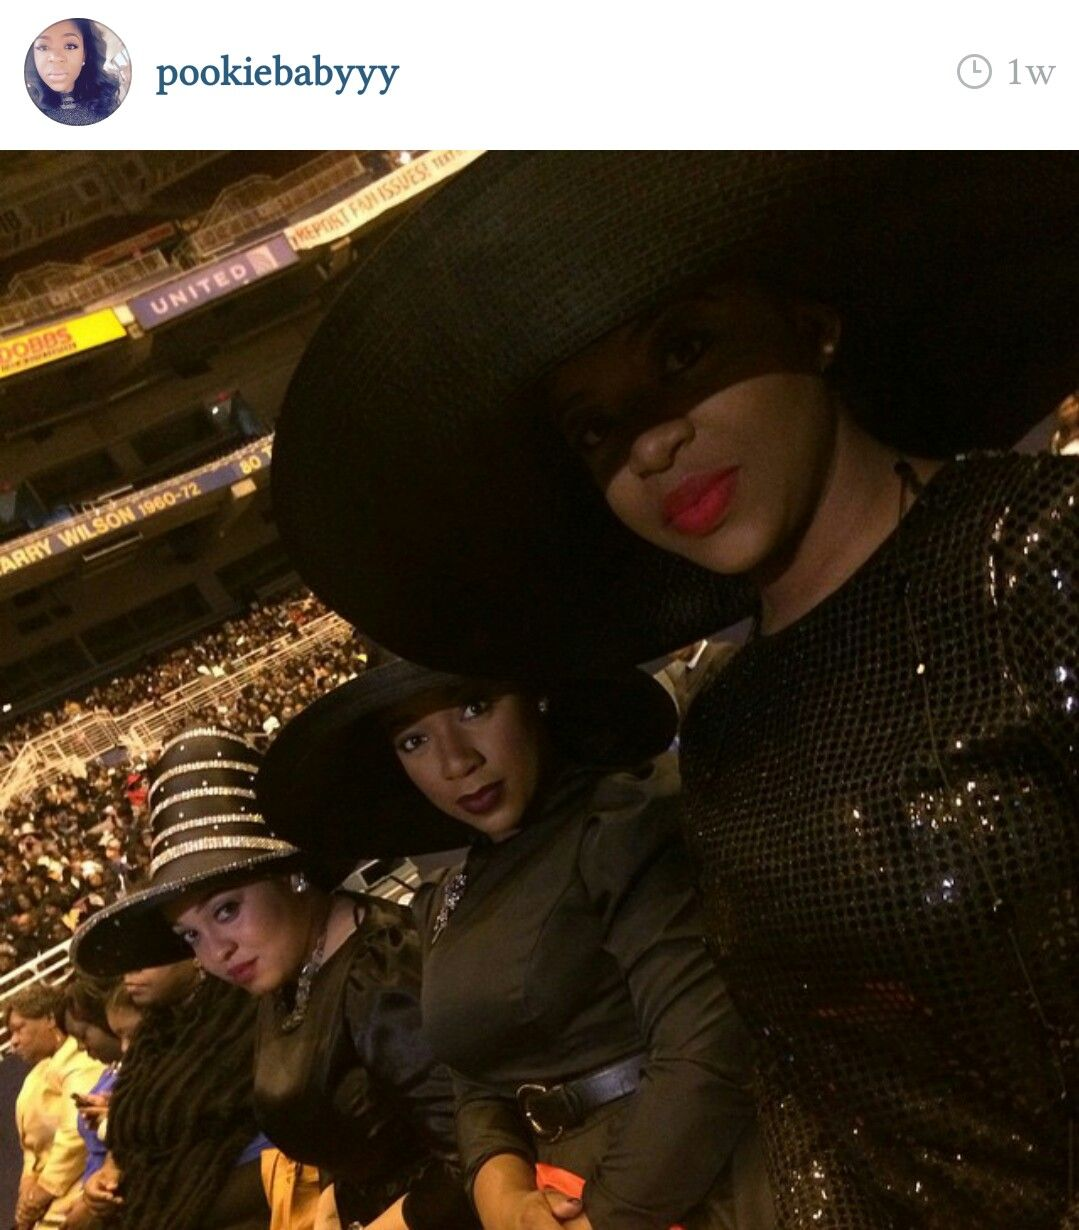 COGIC women in their Holy Convocation best  #millinary #ladieshats